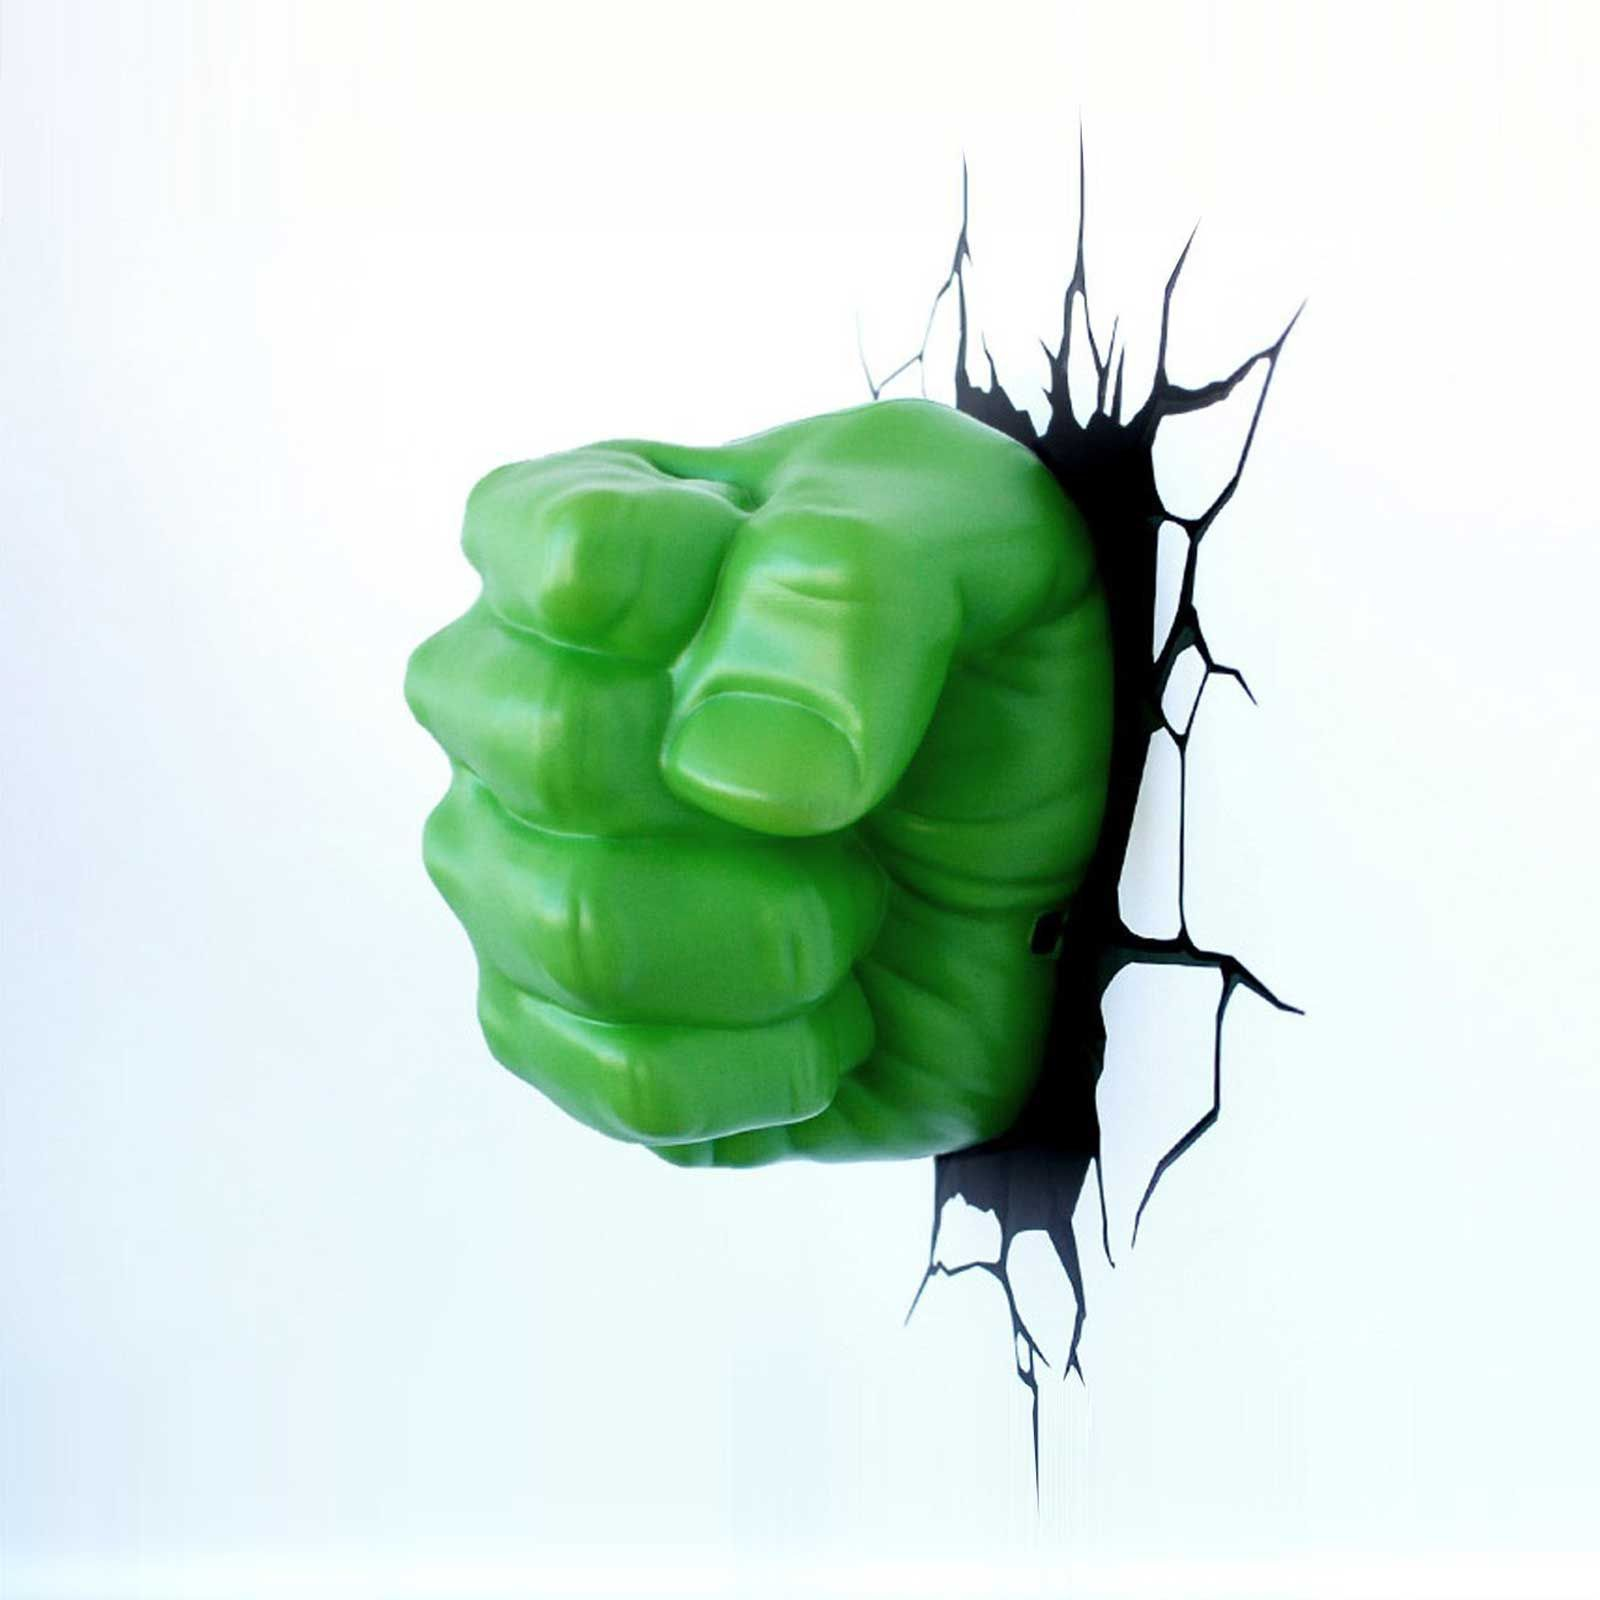 Marvel Wall Lights Hulk : MARVEL AVENGERS HULK FIST 3D LED WALL LIGHT NEW + STICKERS ROOM DECOR eBay